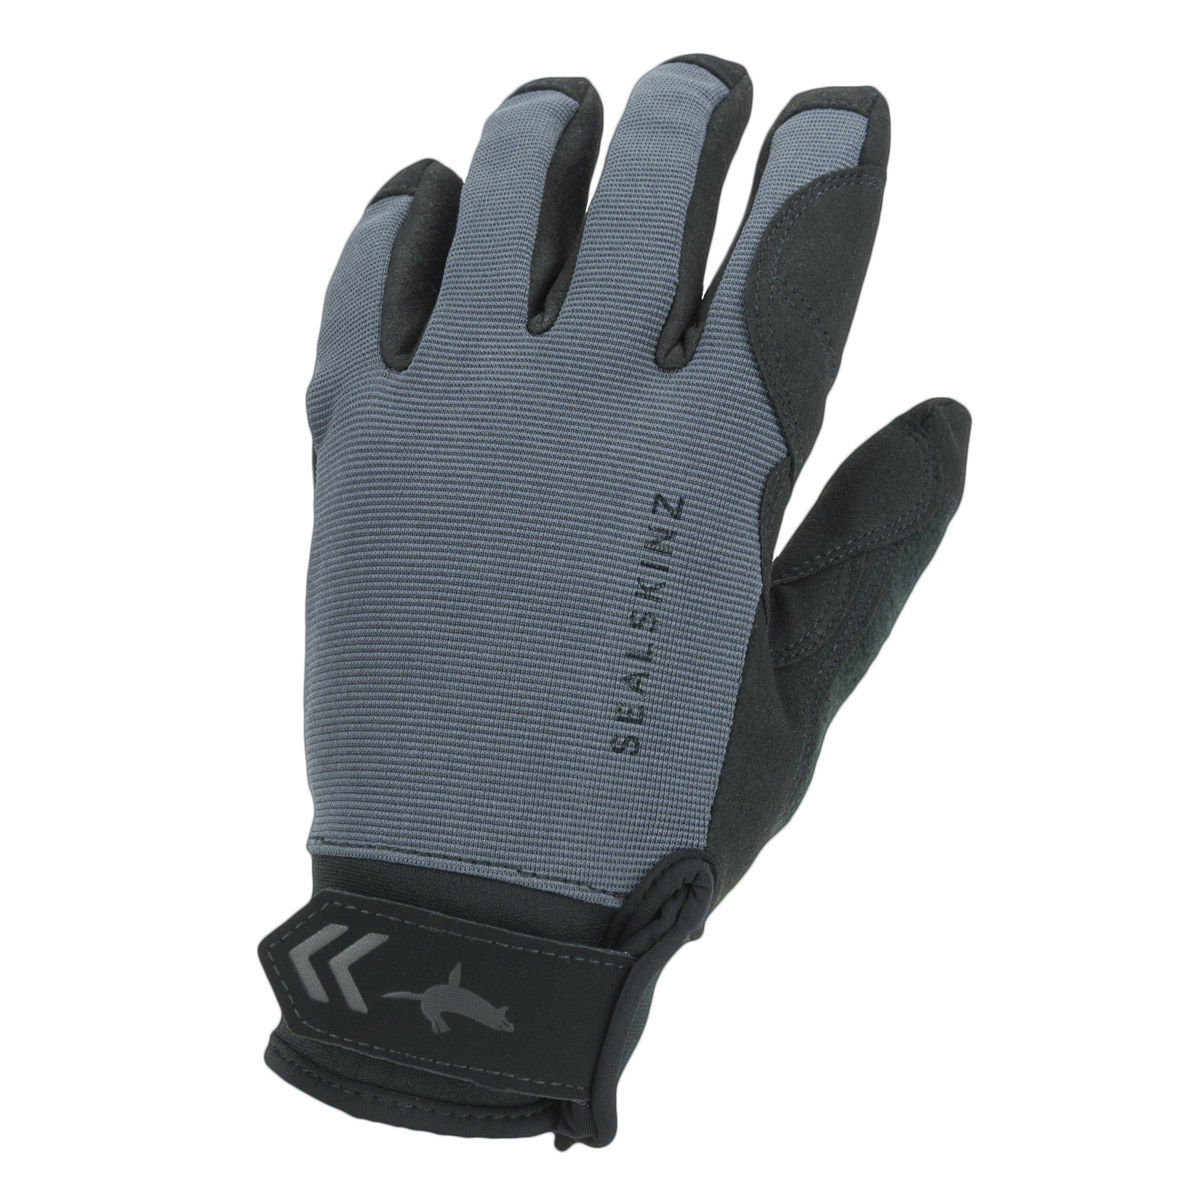 SEALSKINZ Unisex Waterproof